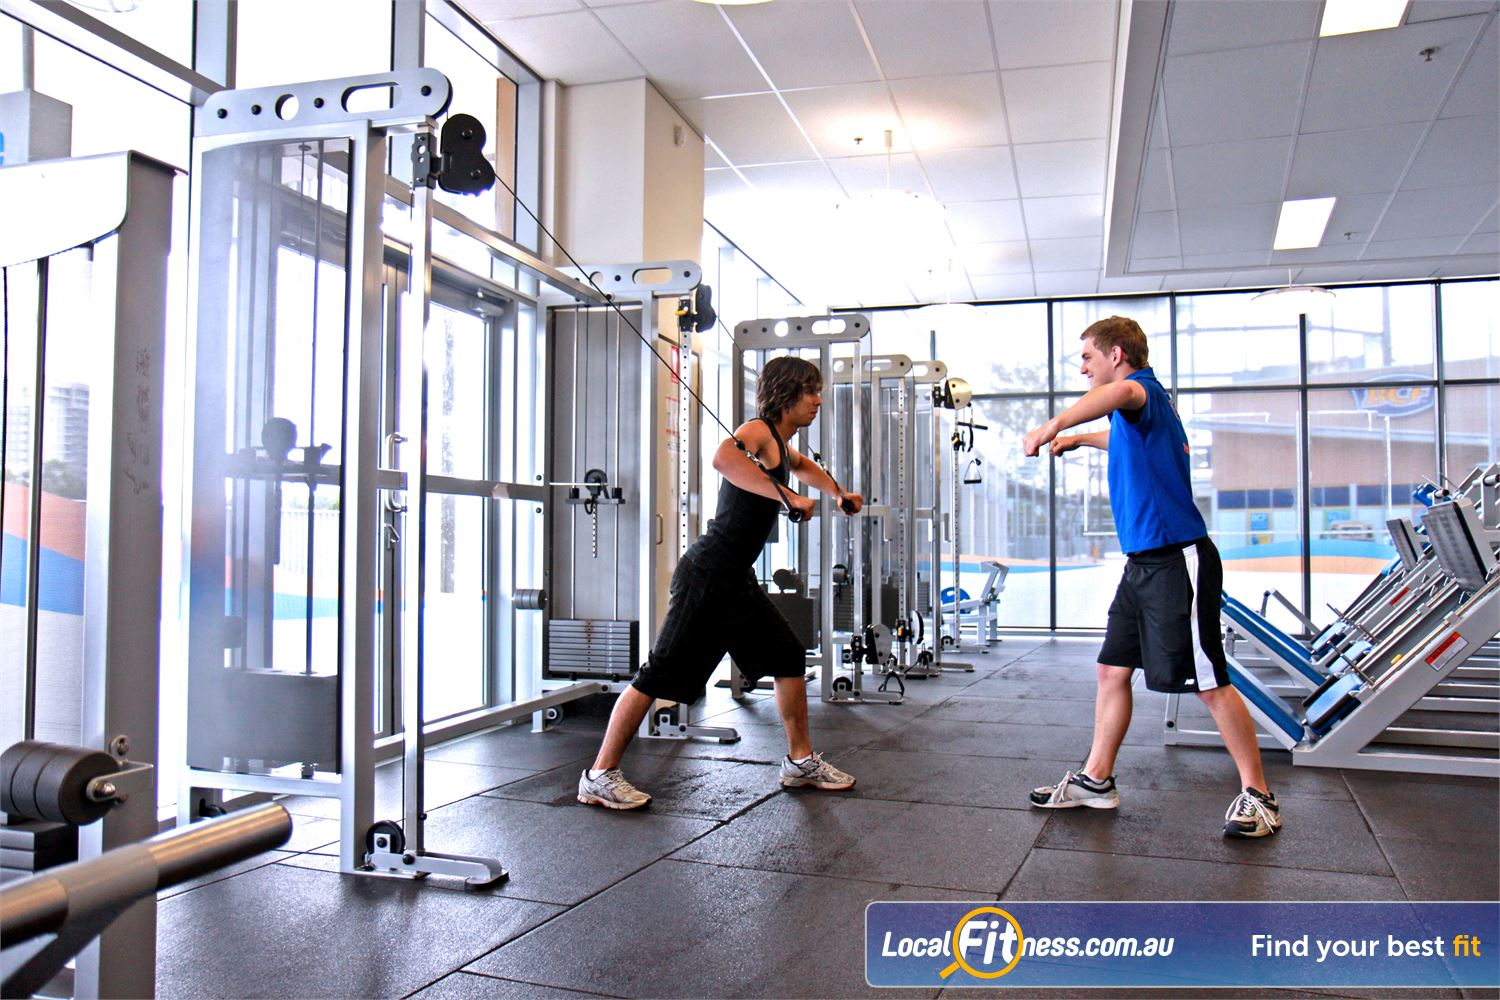 Goodlife Health Clubs Ipswich Ipswich gym instructors can tailor a weight-loss and strength training program to suit you.